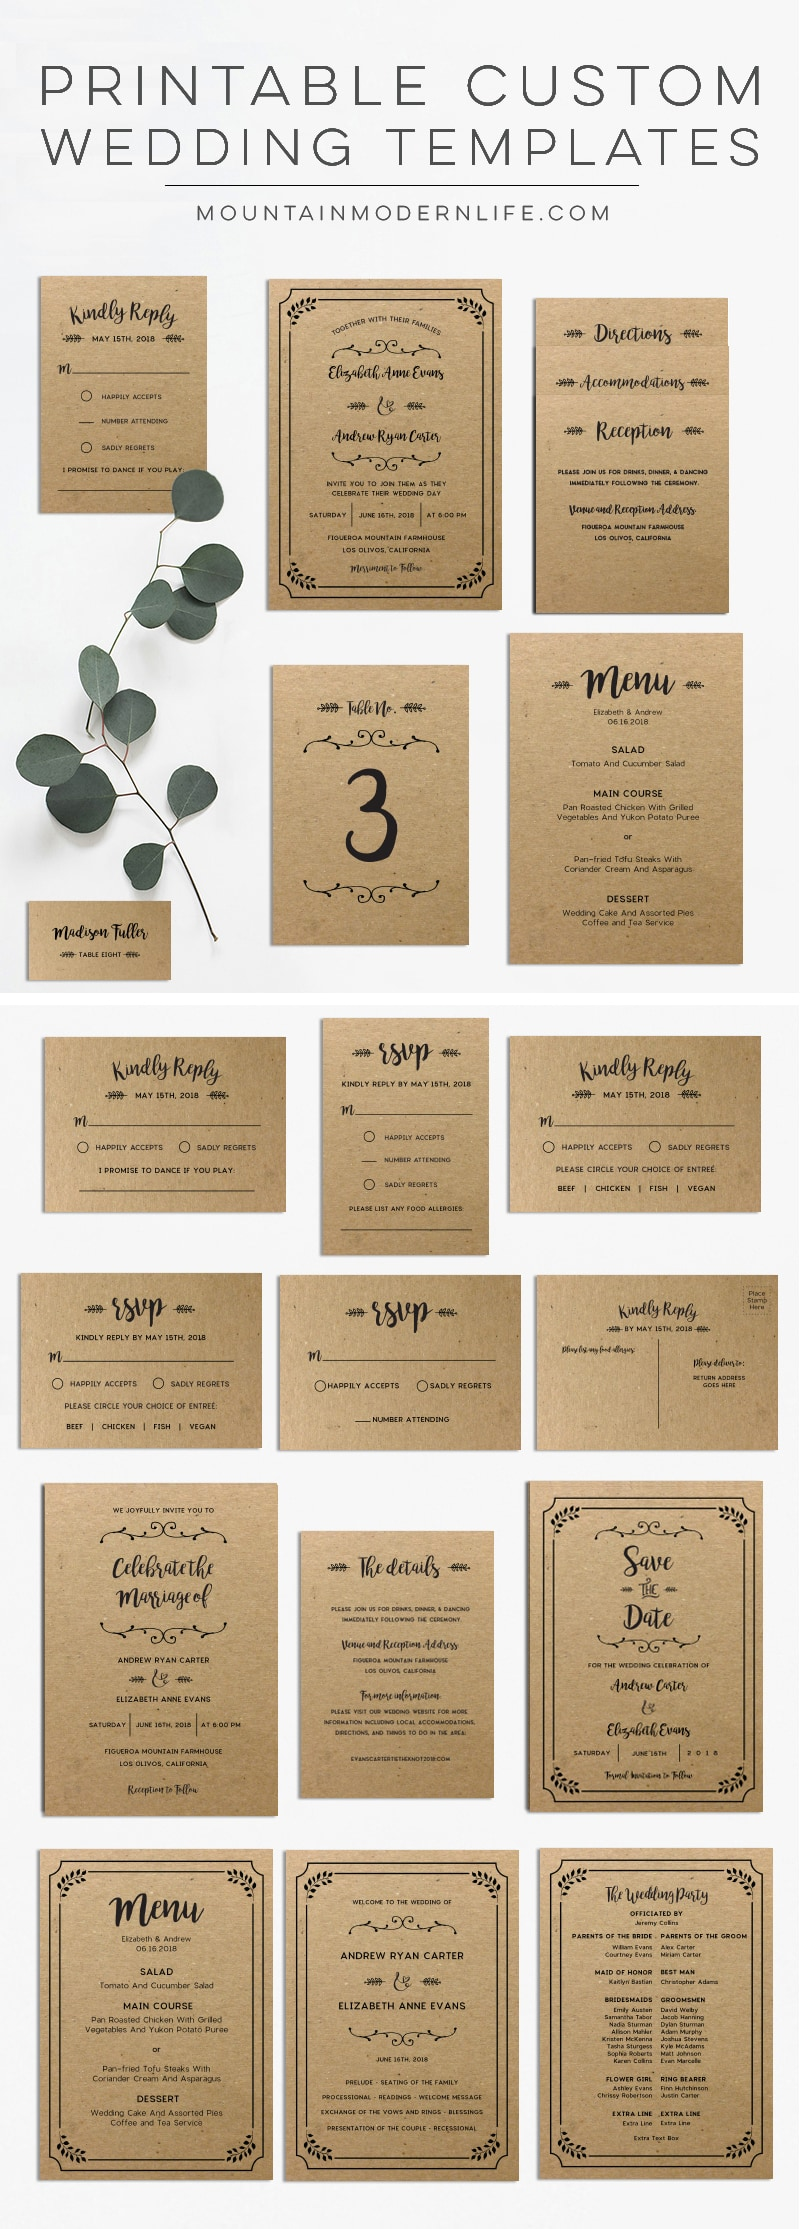 Custom Printable Wedding Invitation Templates | MountainModernLife.com